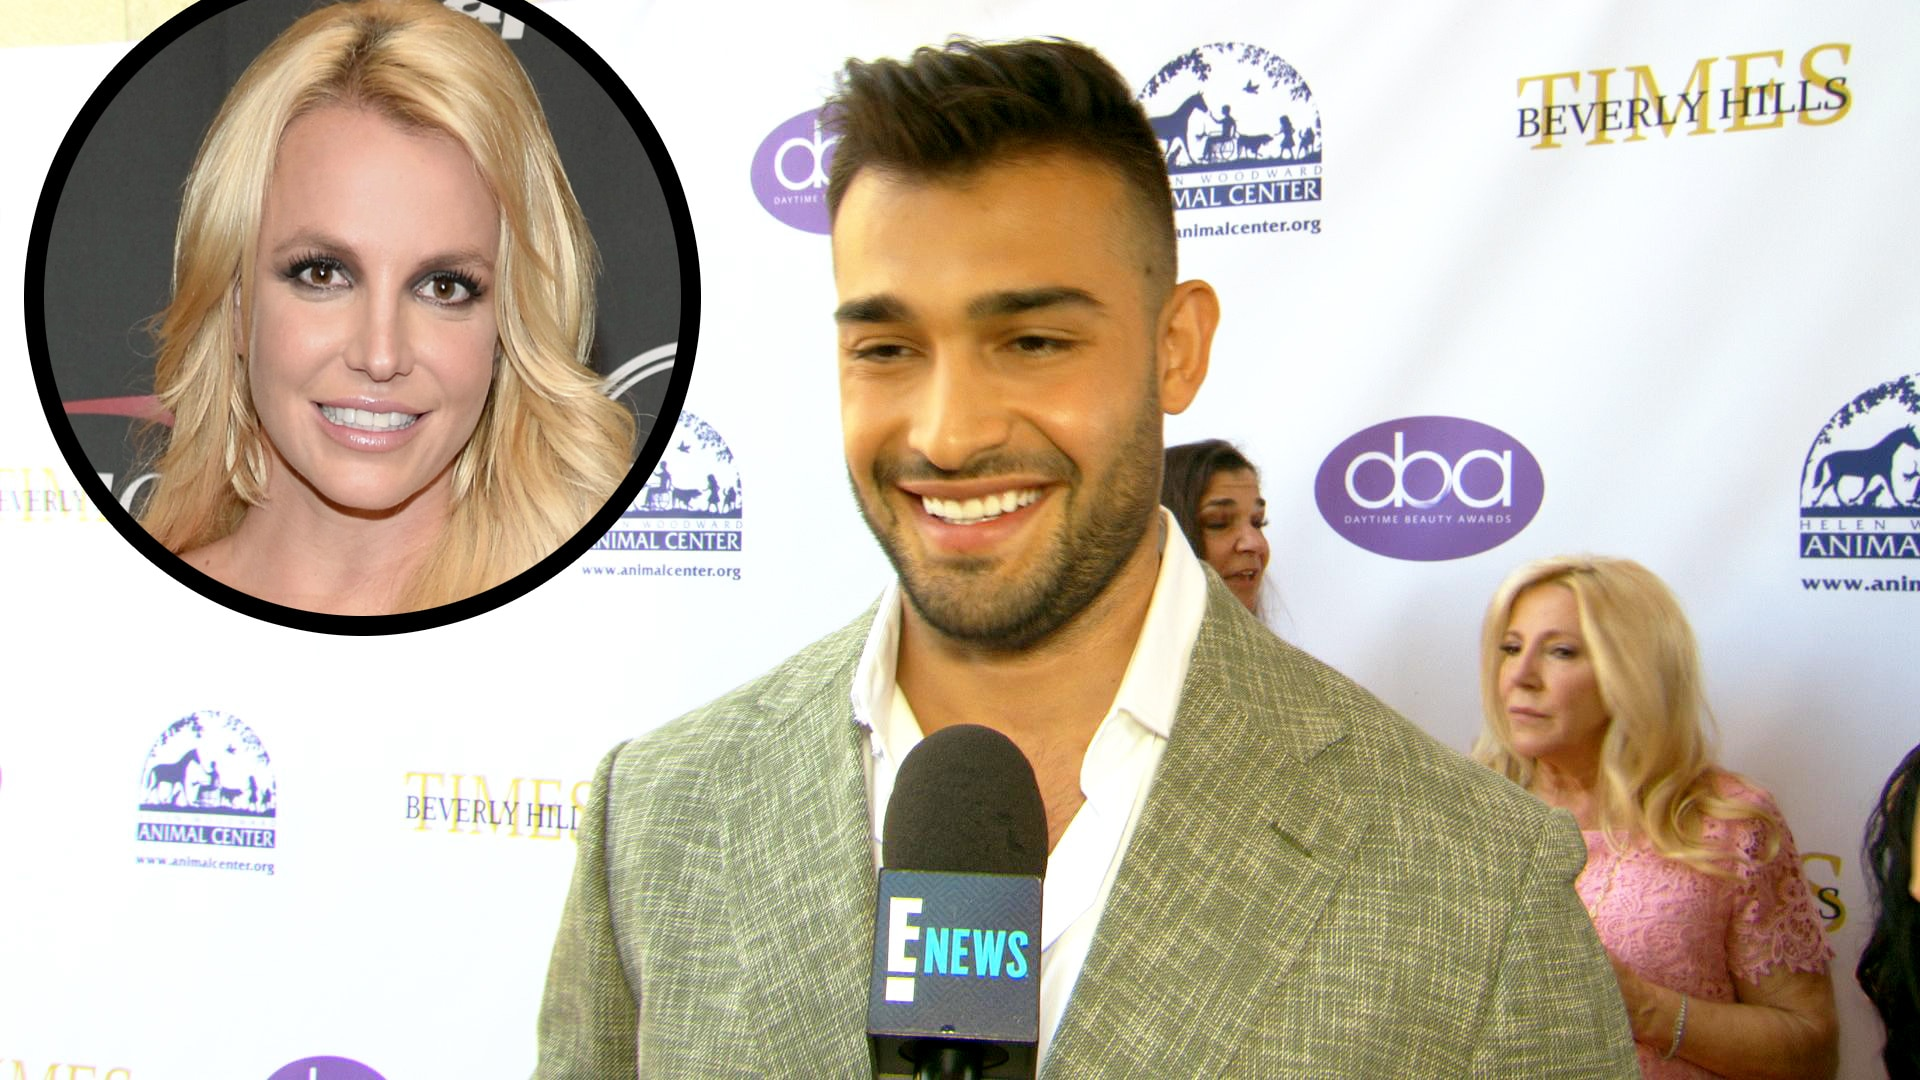 Britney Spears' Fitness Routine Detailed By Her BF